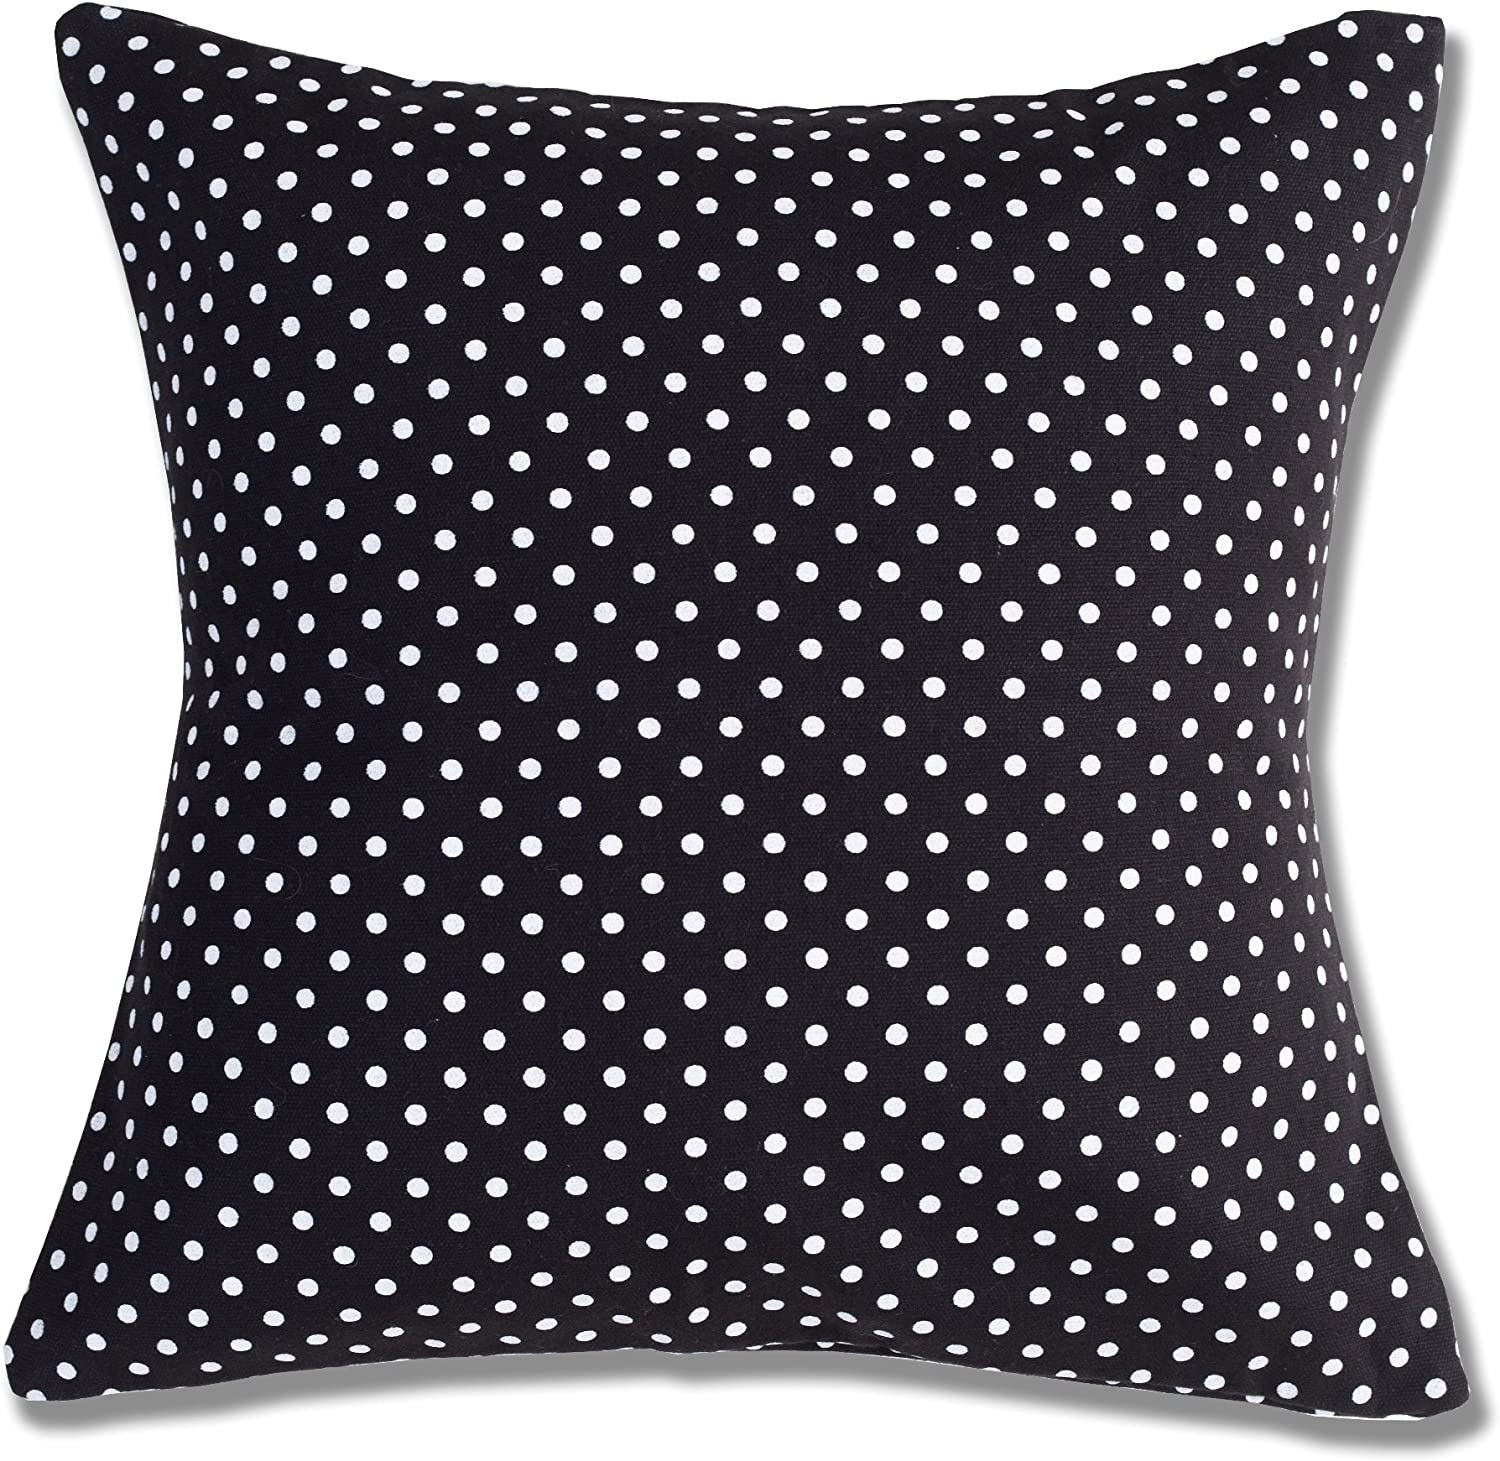 Style Homez Cotton Canvas Polka Dots Printed Cushion Small Size Set of 2 Cover Only